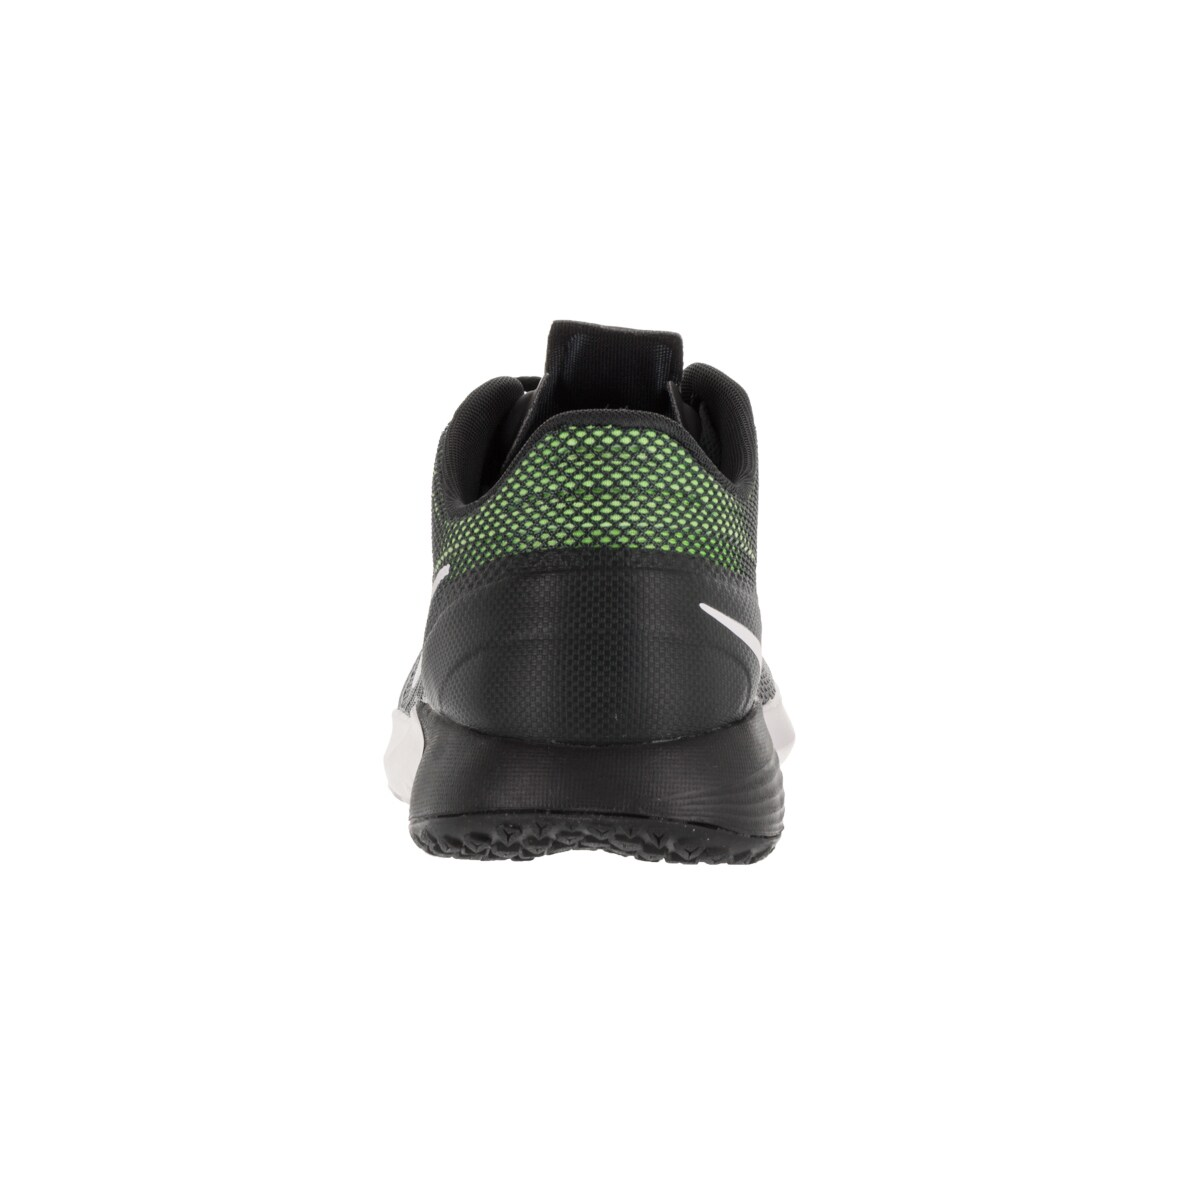 Details about MENS NIKE 807113 007 FS LITE TRAINER 3 BLACK GREEN GRAY RUNNING SHOES SIZE 15